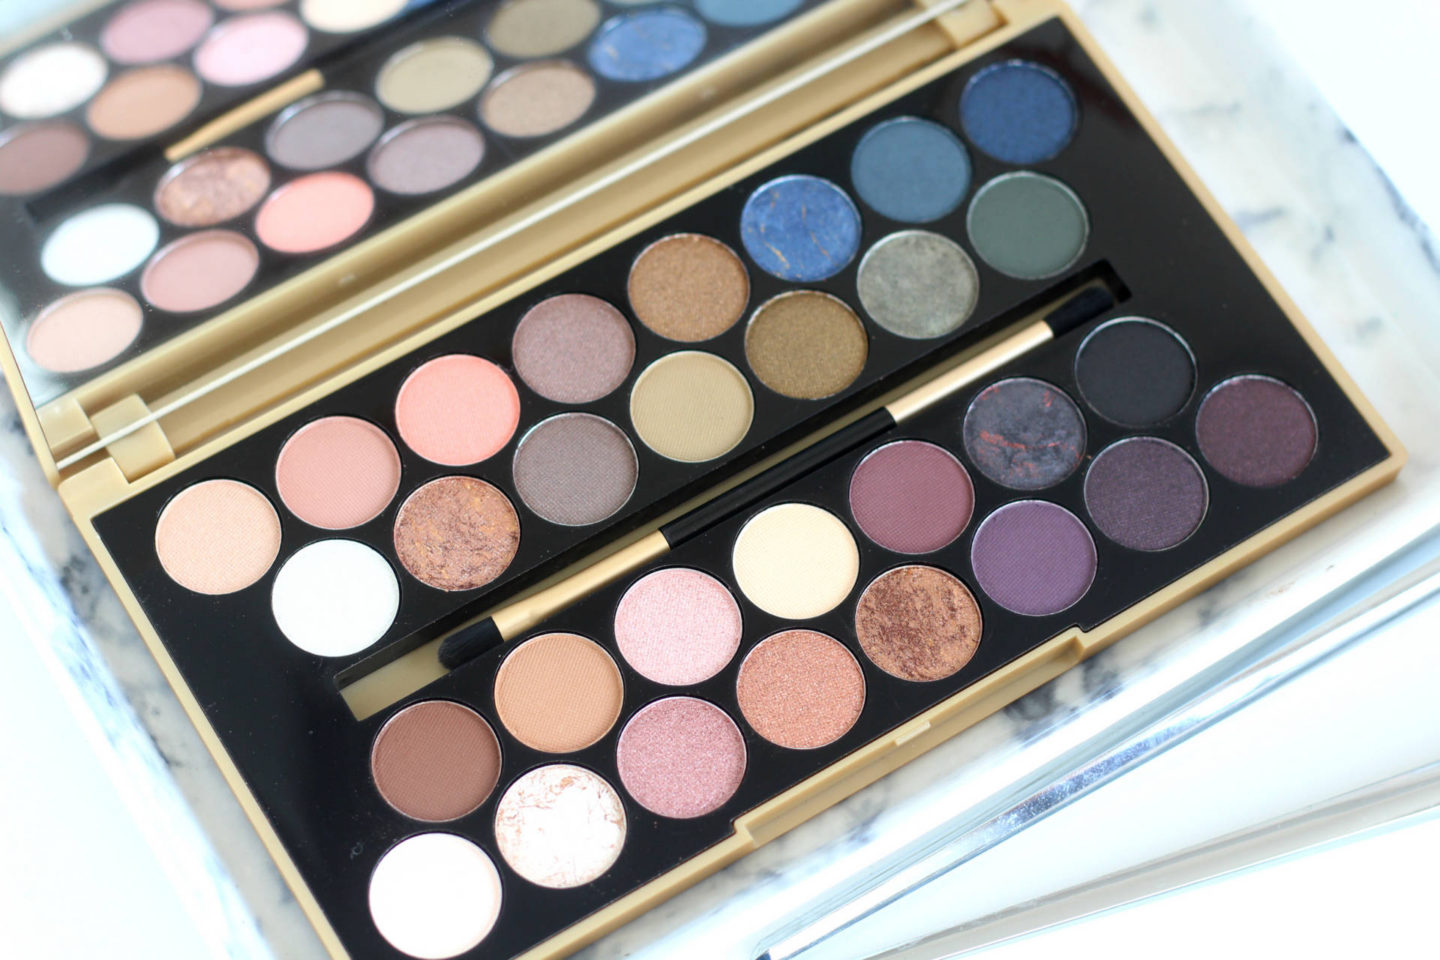 drugstore eyeshadow palettes to try this Autumn